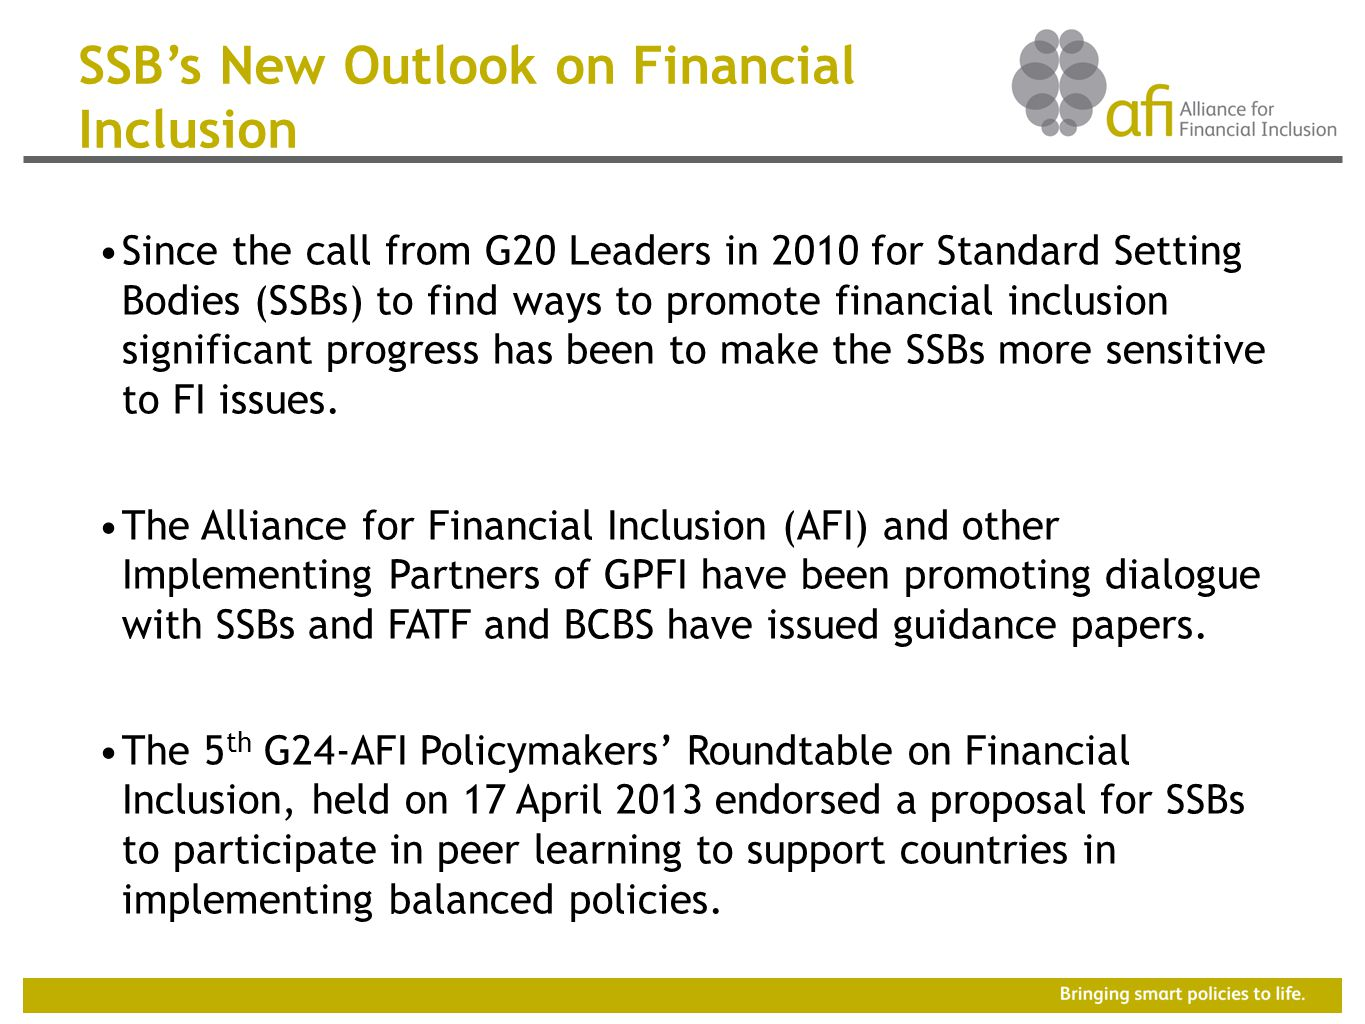 SSB's New Outlook on Financial Inclusion Since the call from G20 Leaders in 2010 for Standard Setting Bodies (SSBs) to find ways to promote financial inclusion significant progress has been to make the SSBs more sensitive to FI issues.